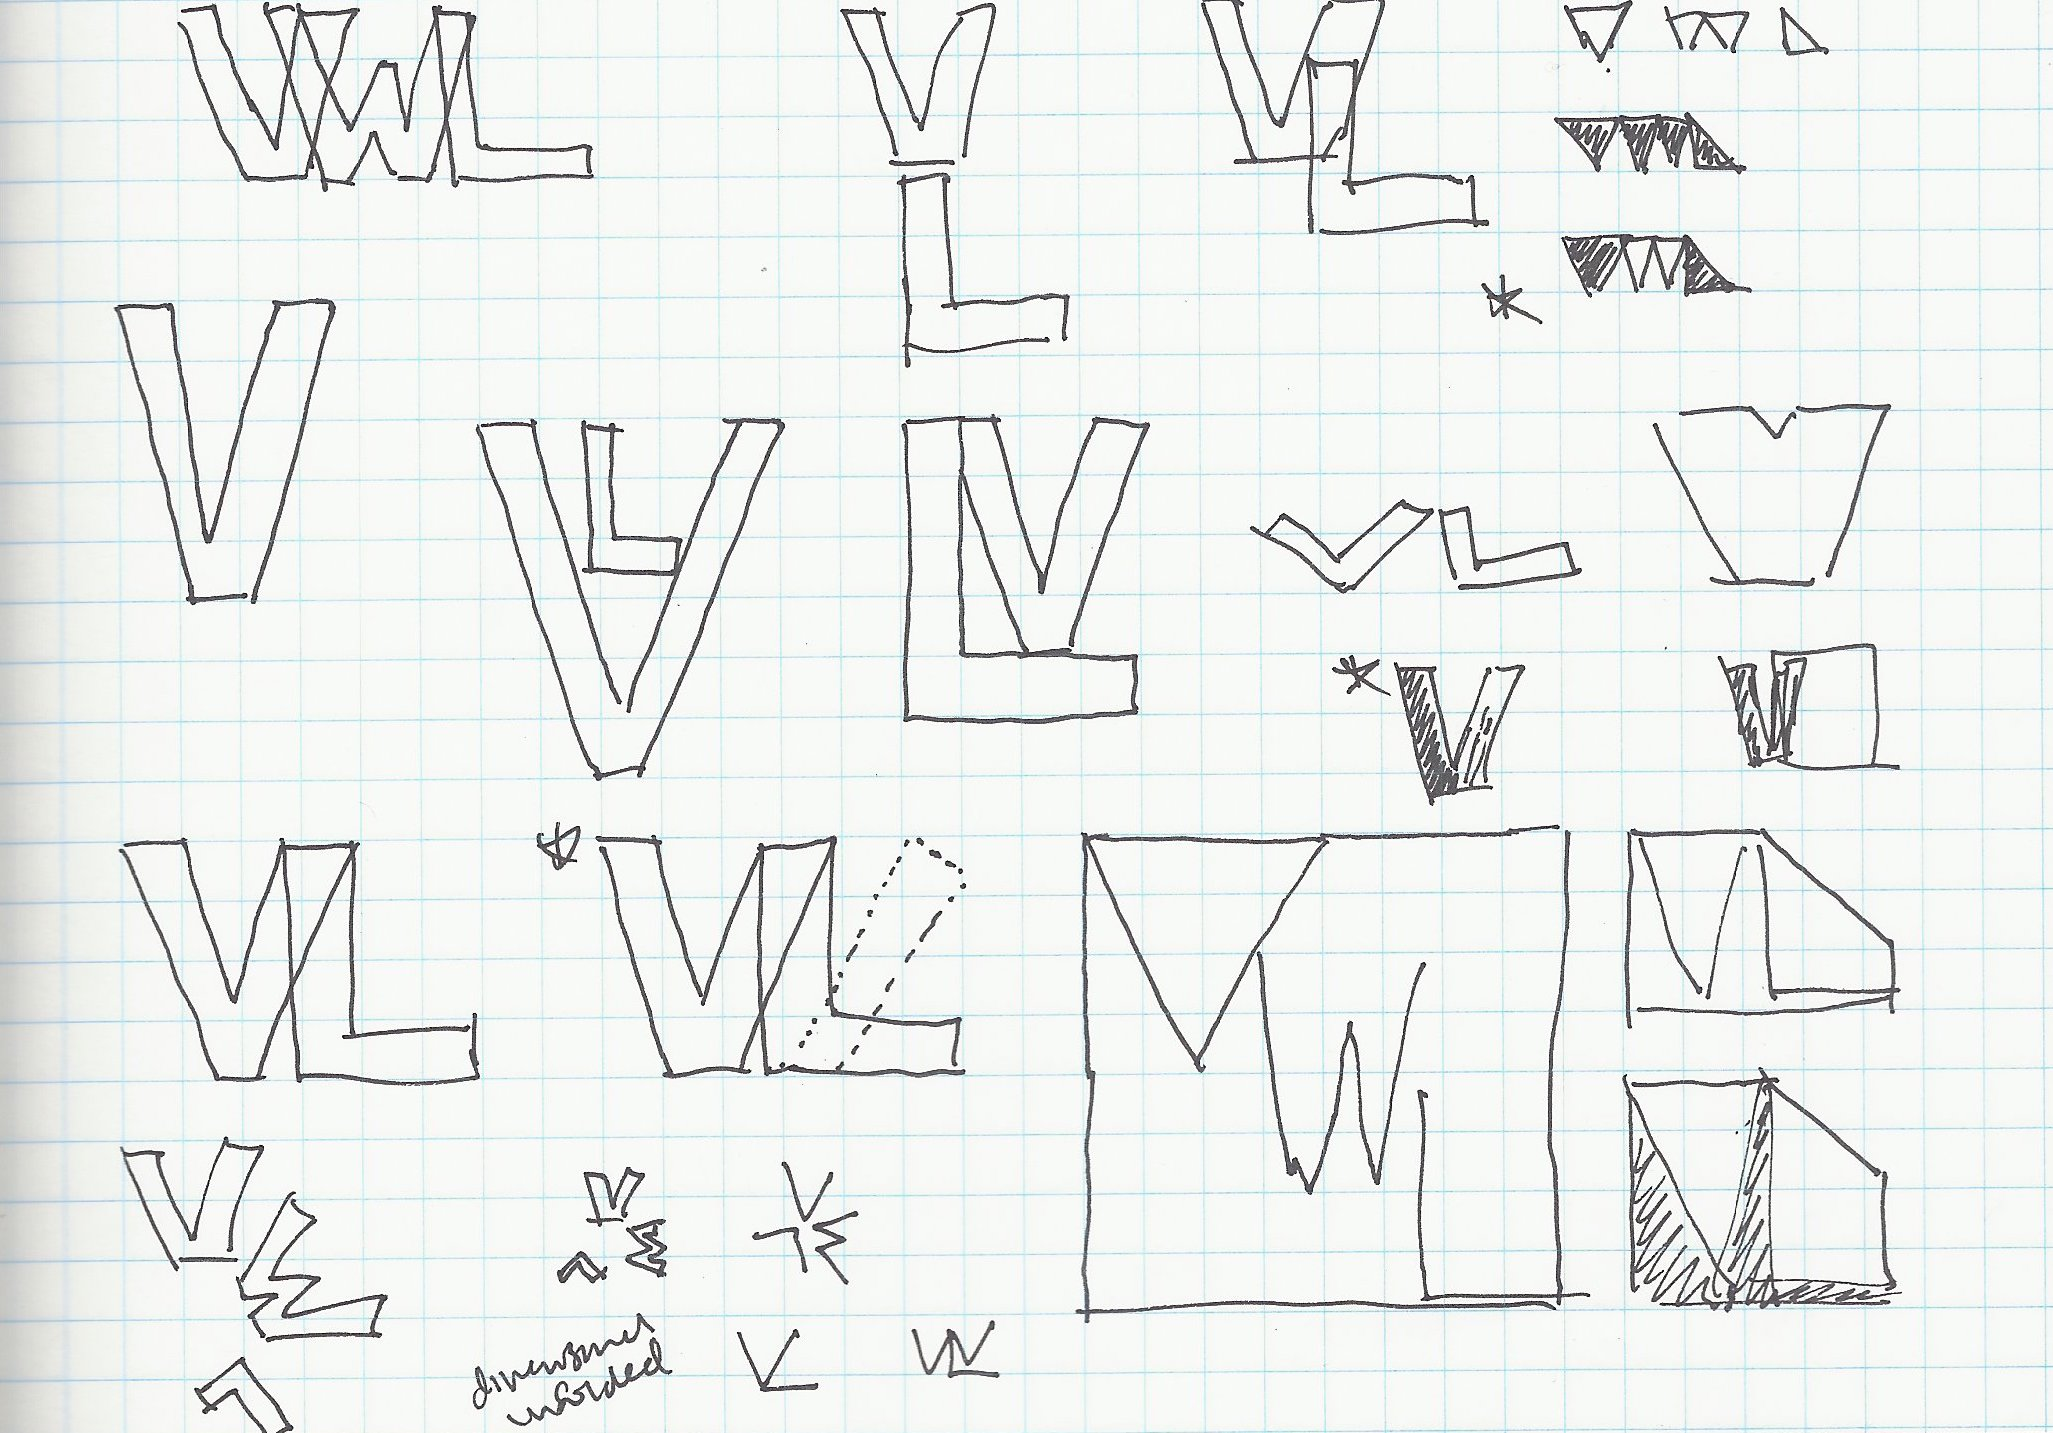 initial sketches for my logo